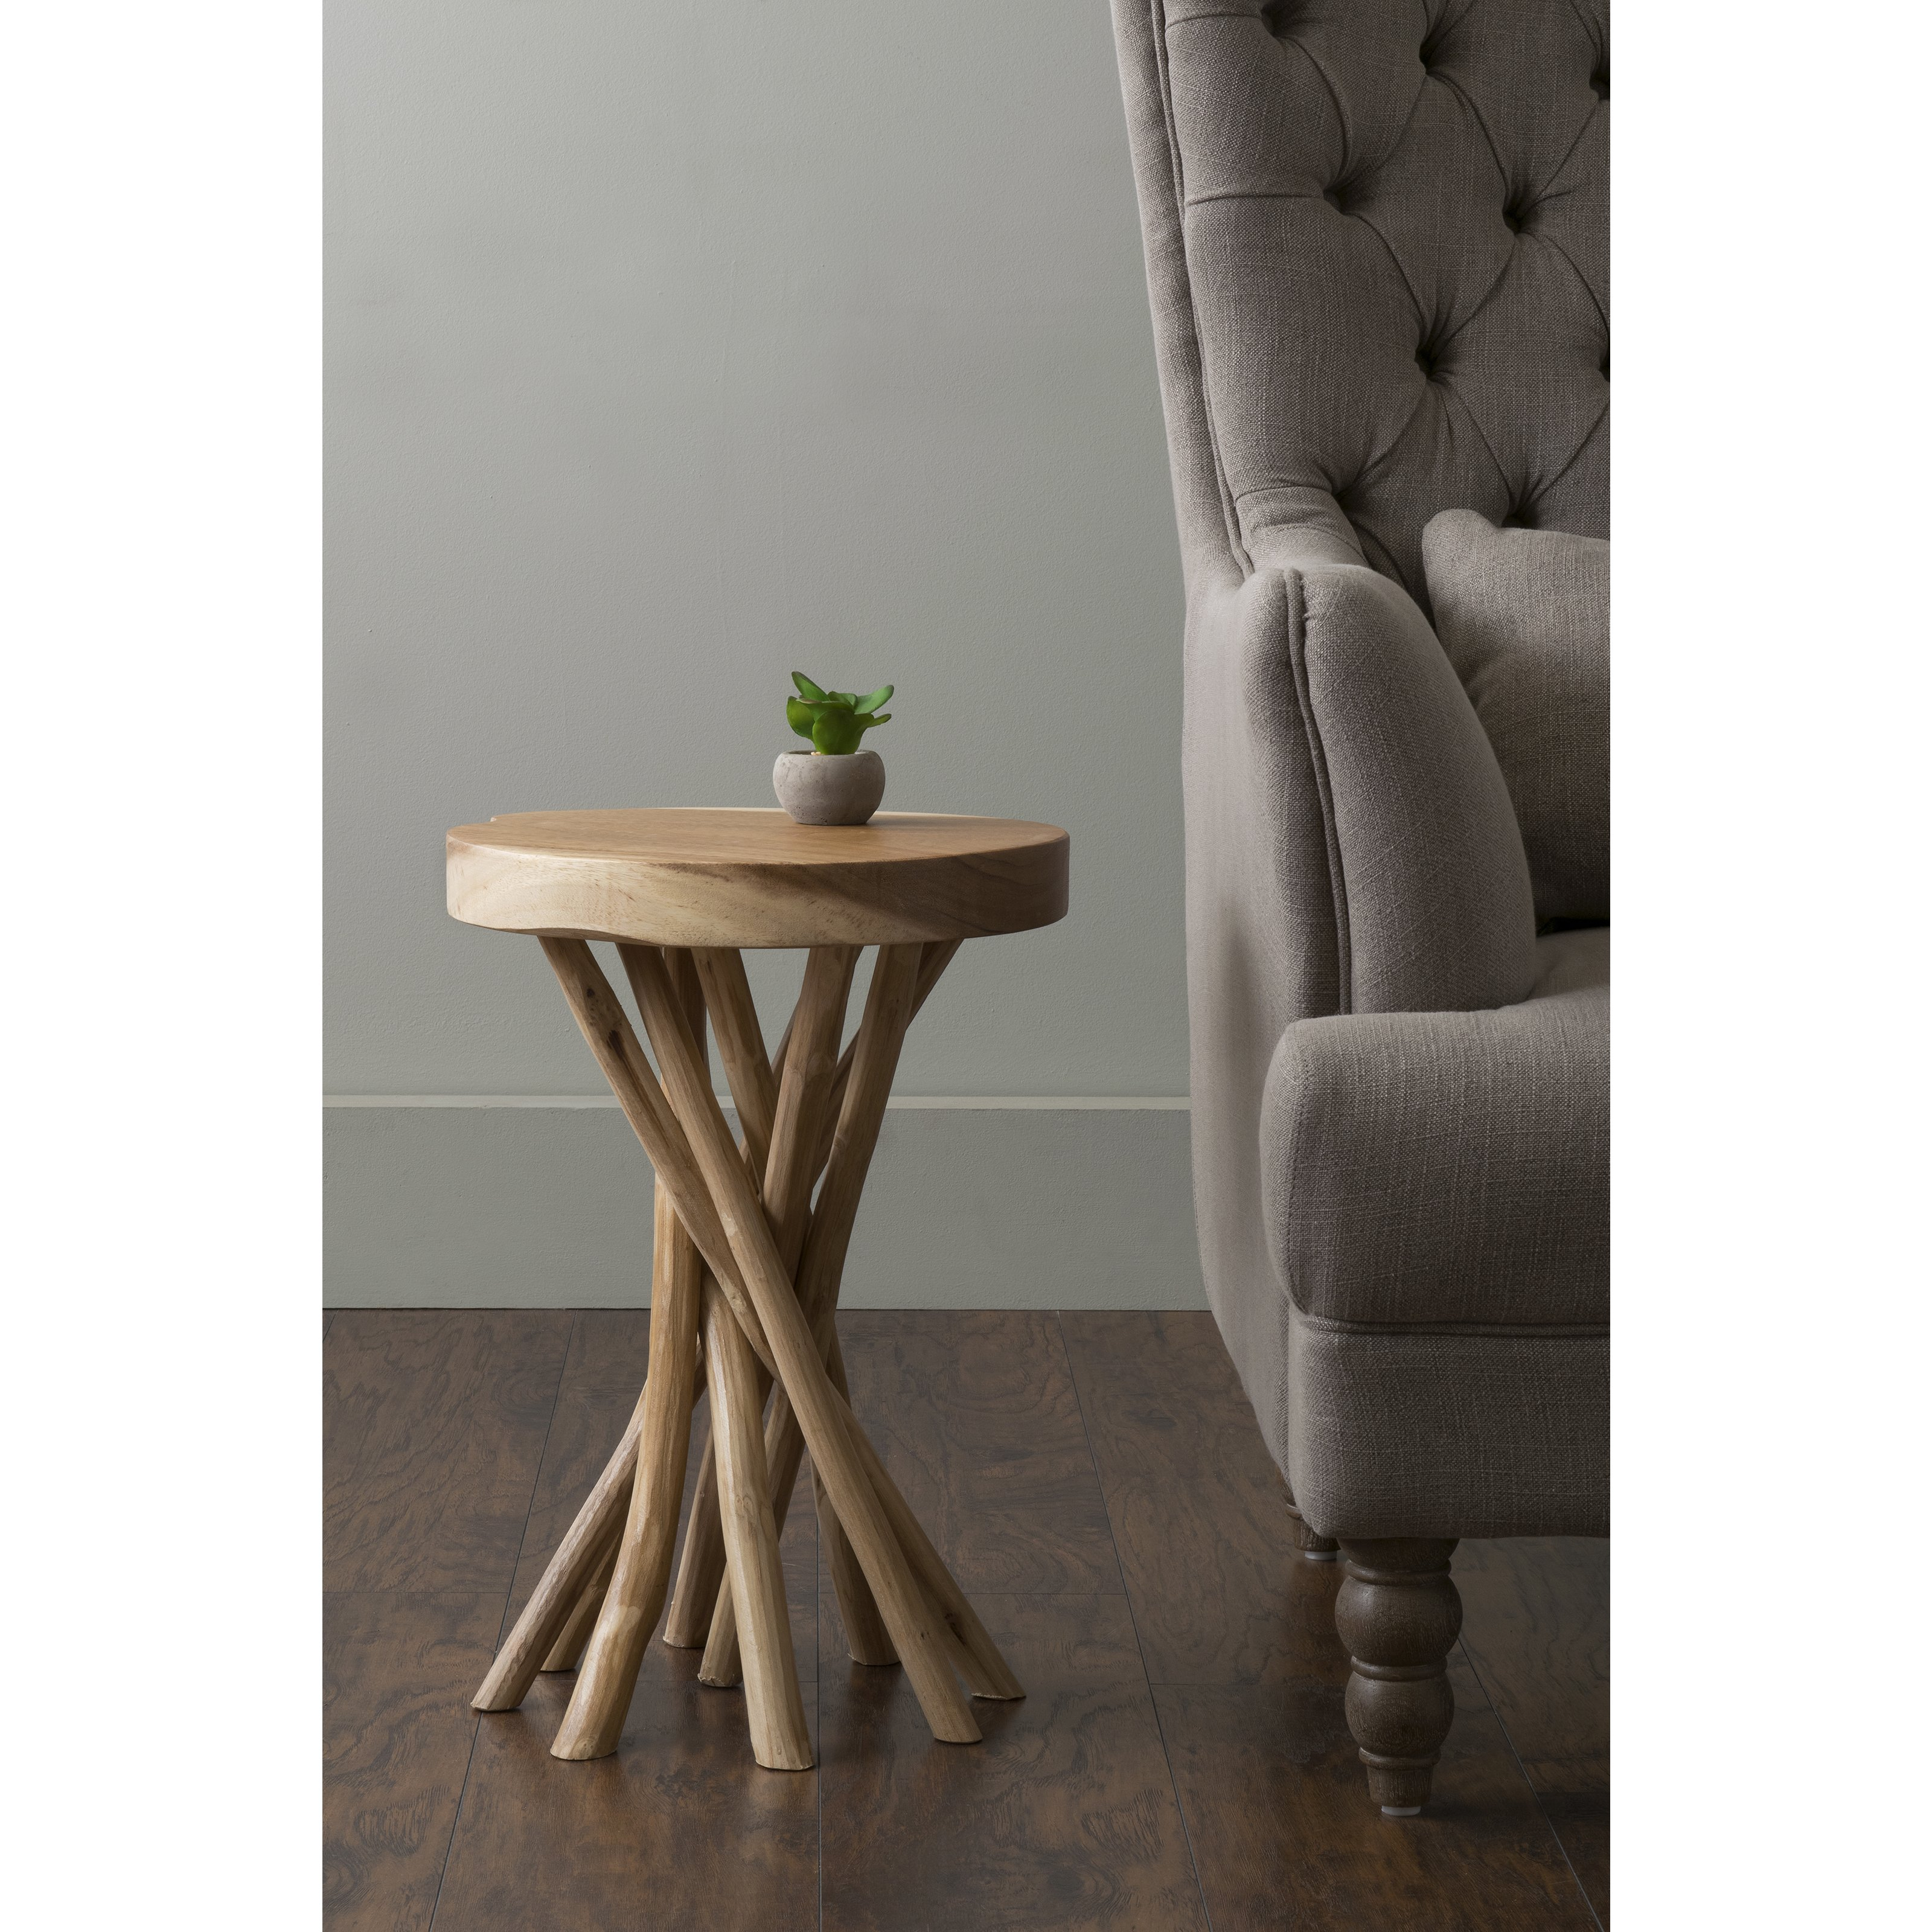 east main kenton brown teakwood round accent table free gray antique wheels for coffee chest entryway bedroom curtains ikea quilted toppers knotty pine bar stools west elm glass